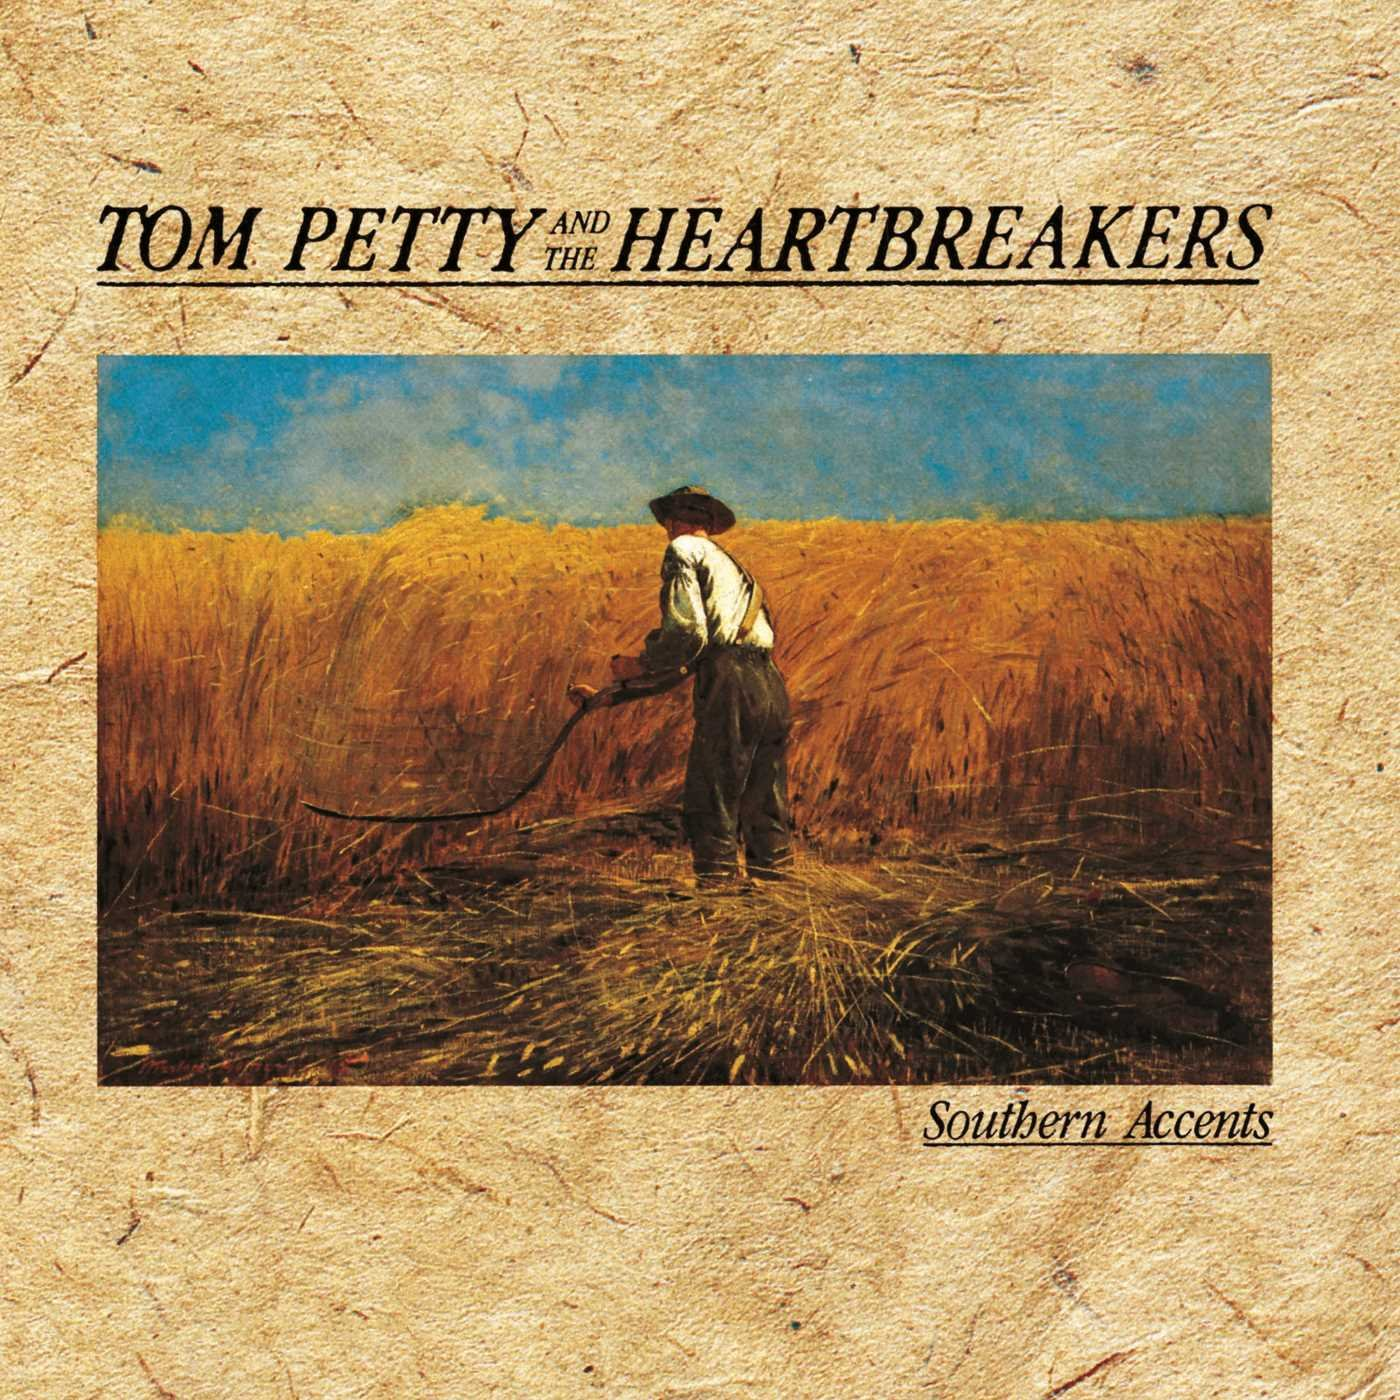 Tom Petty And The Heartbreakers - Southern Accents - Amazon.com Music